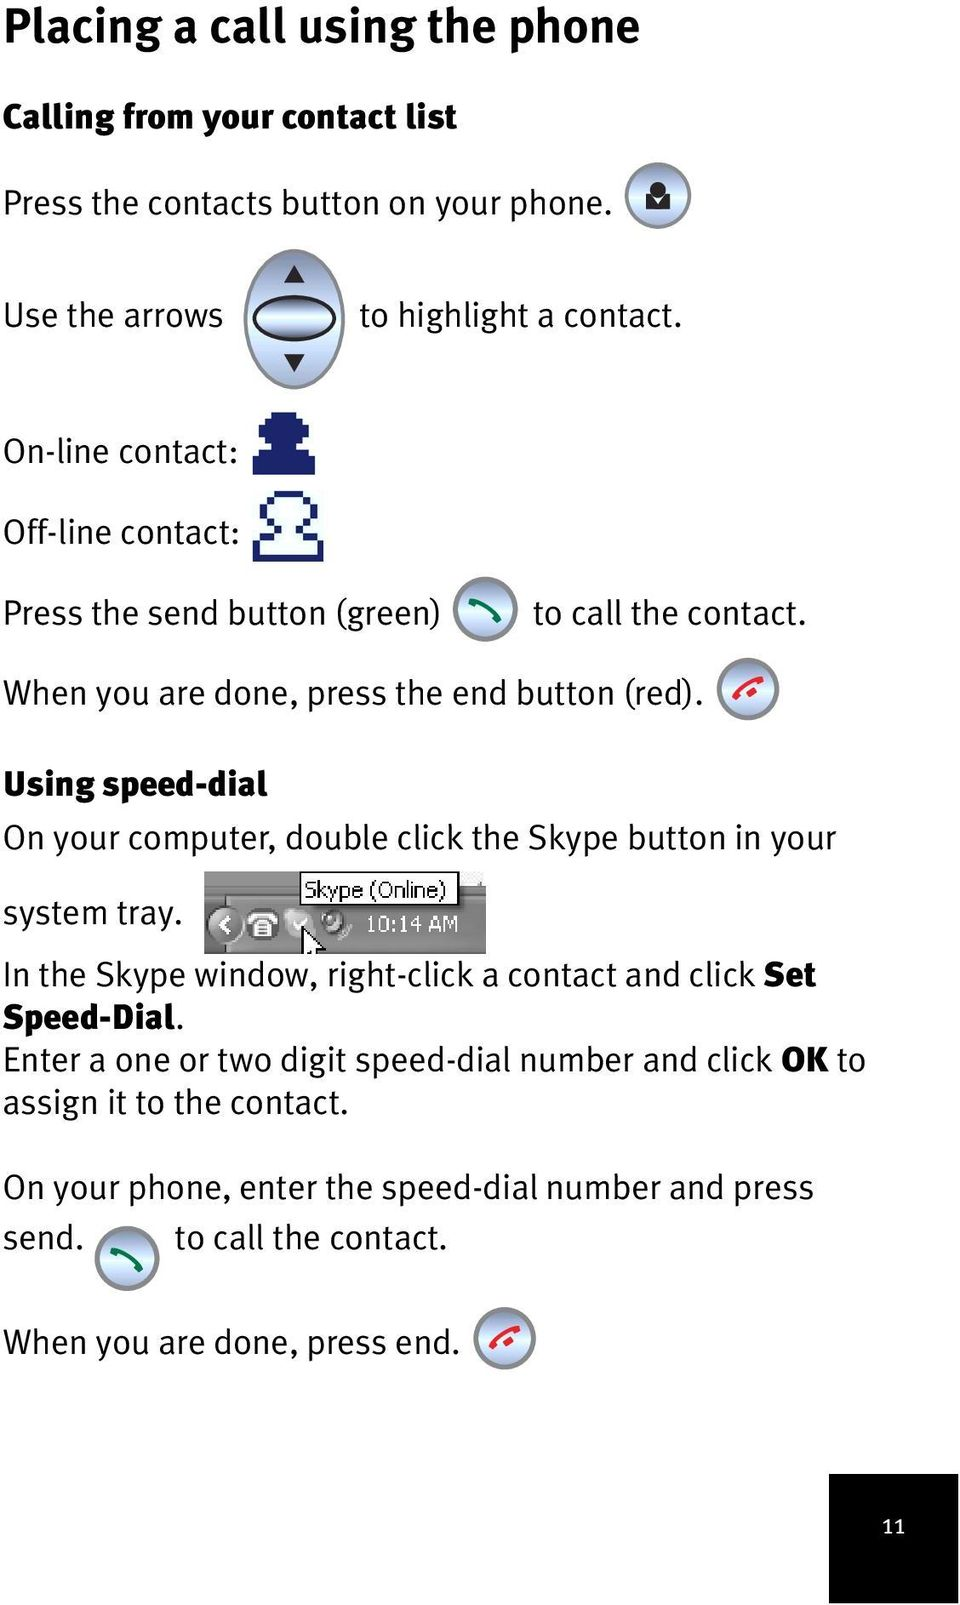 Using speed-dial On your computer, double click the Skype button in your system tray. In the Skype window, right-click a contact and click Set Speed-Dial.